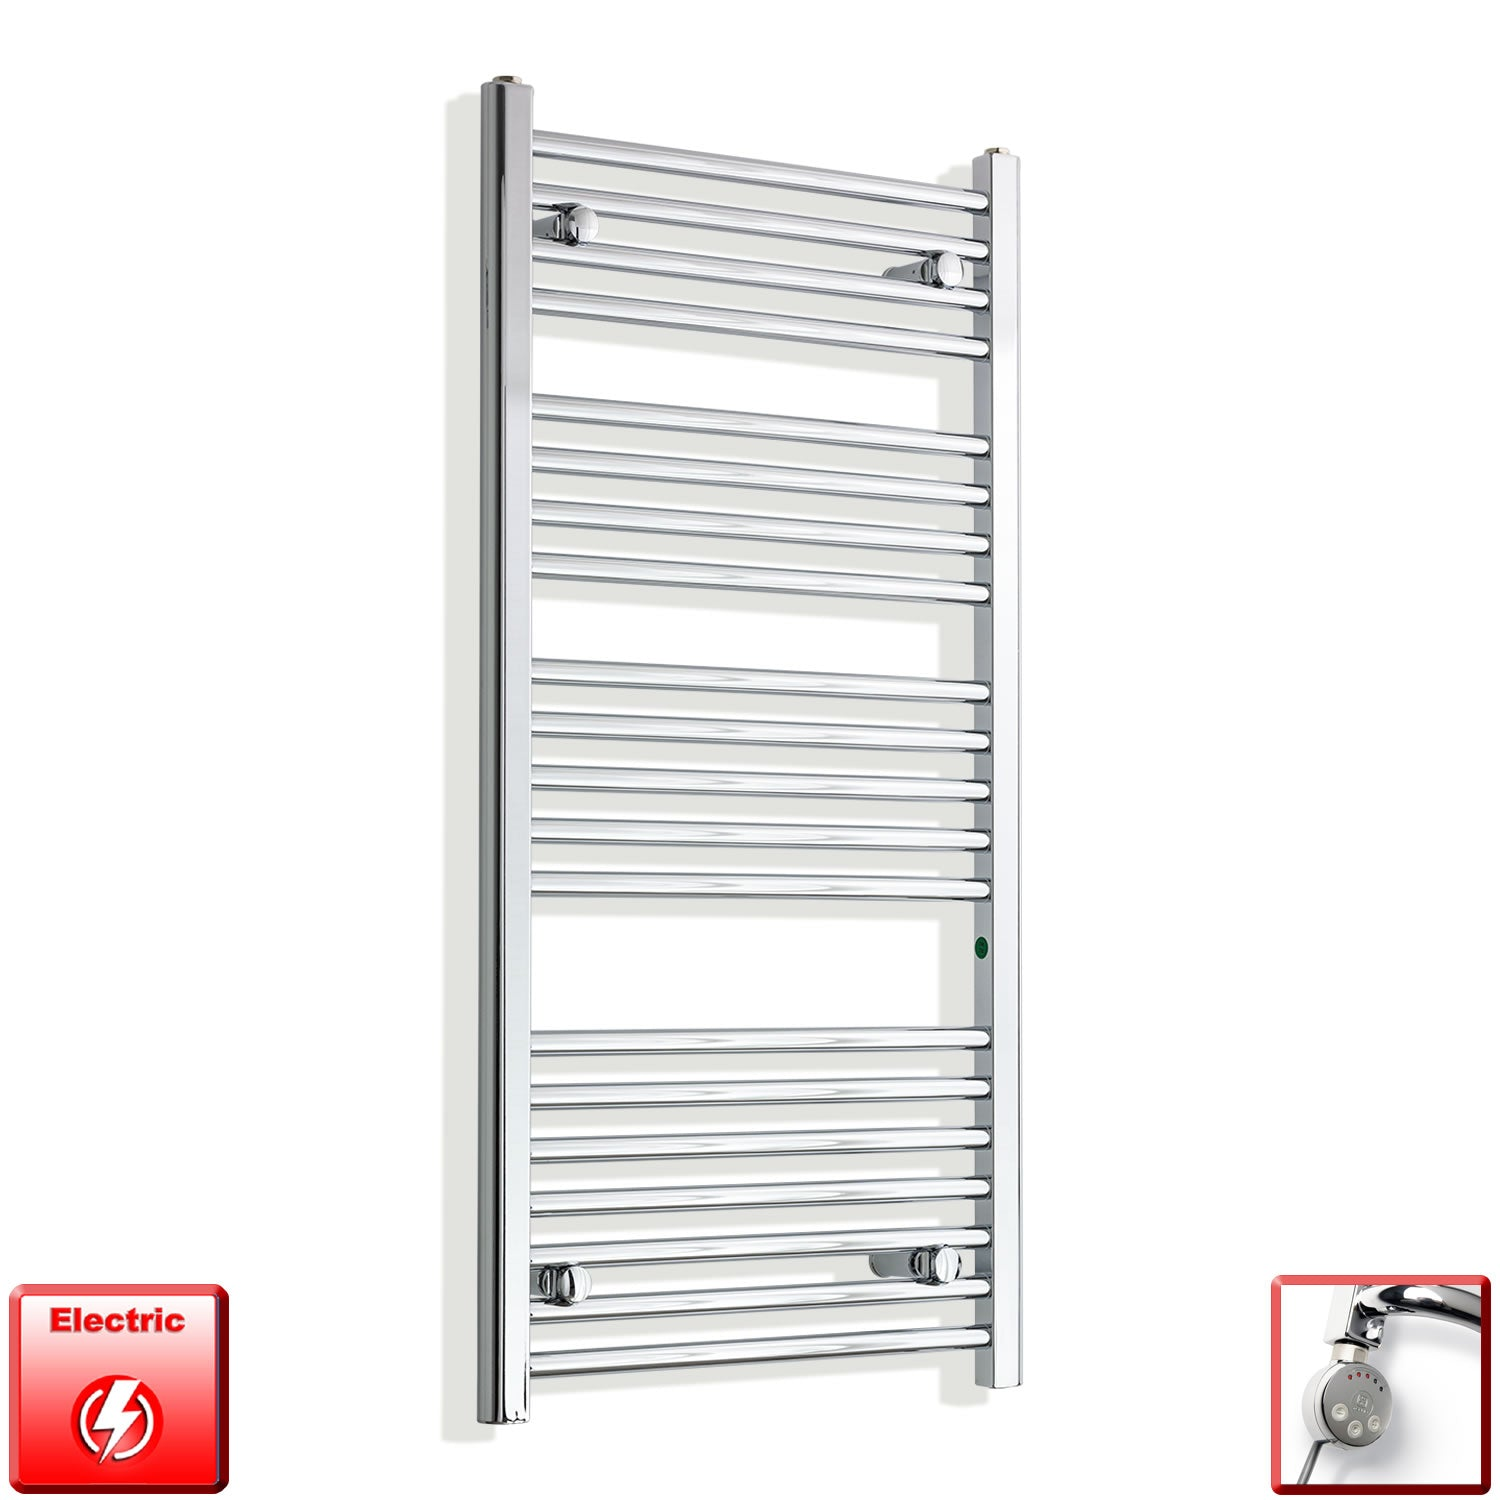 550mm Wide 1100mm High Pre-Filled Chrome Electric Towel Rail Radiator With Thermostatic MEG Element